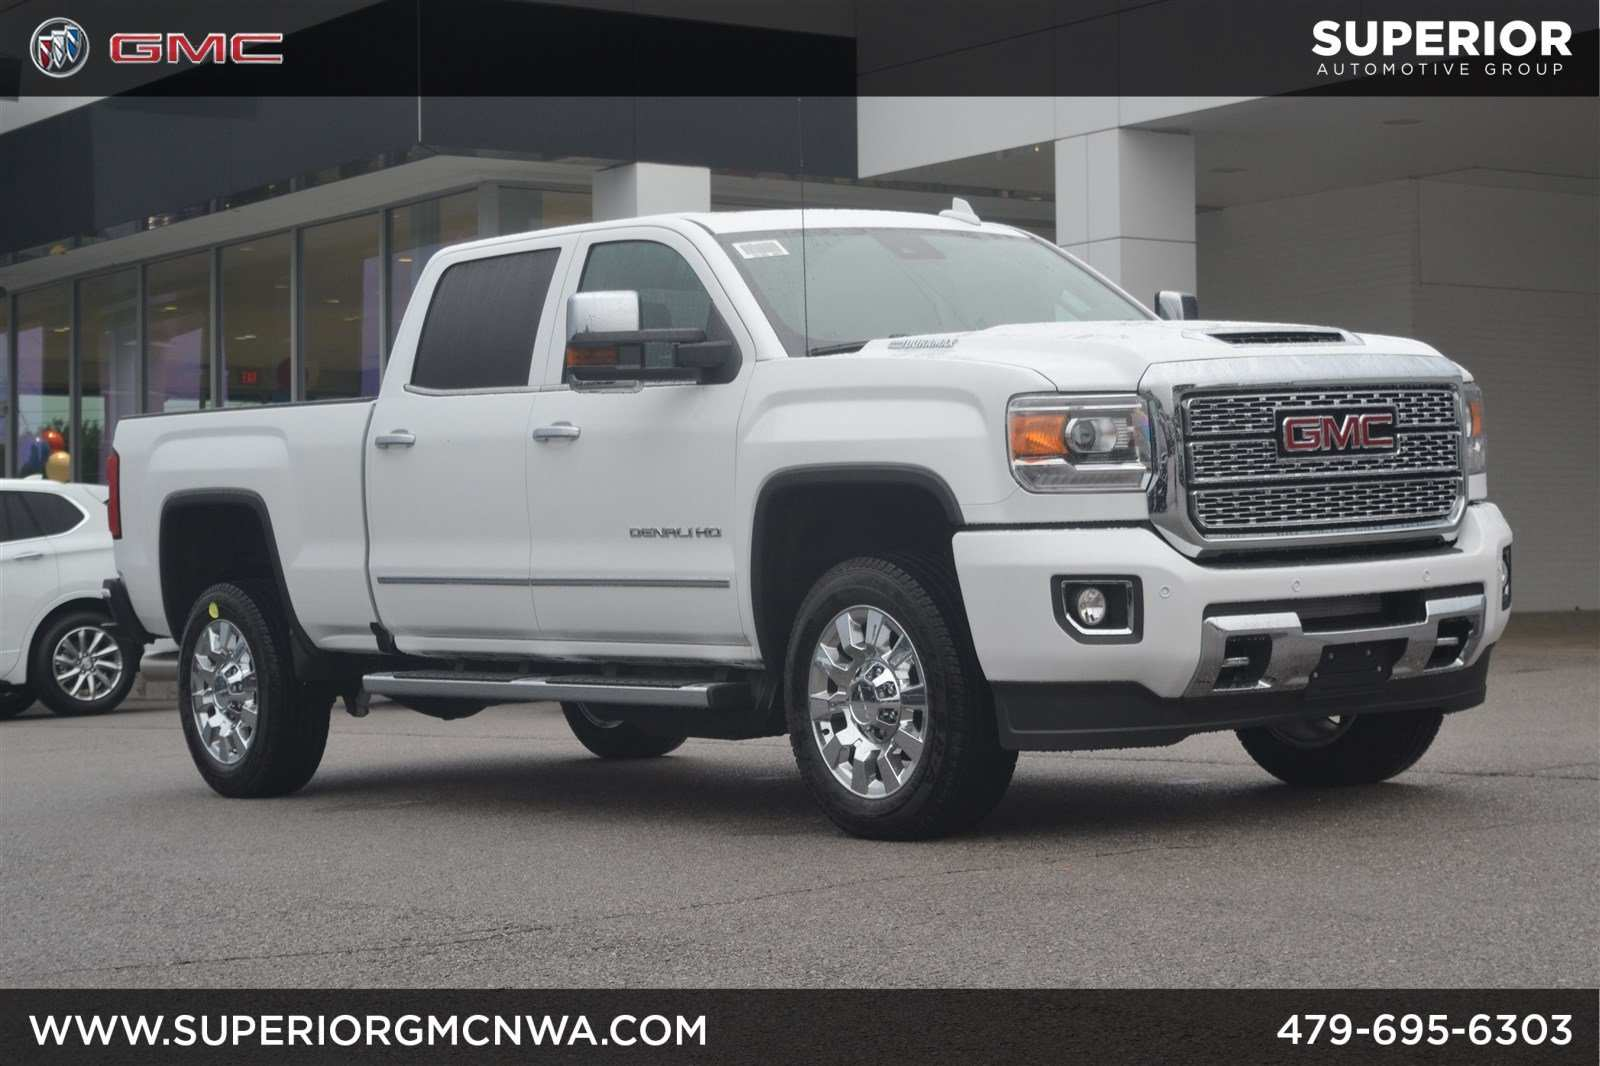 81 The Best 2019 Gmc 2500 Sierra Denali Configurations